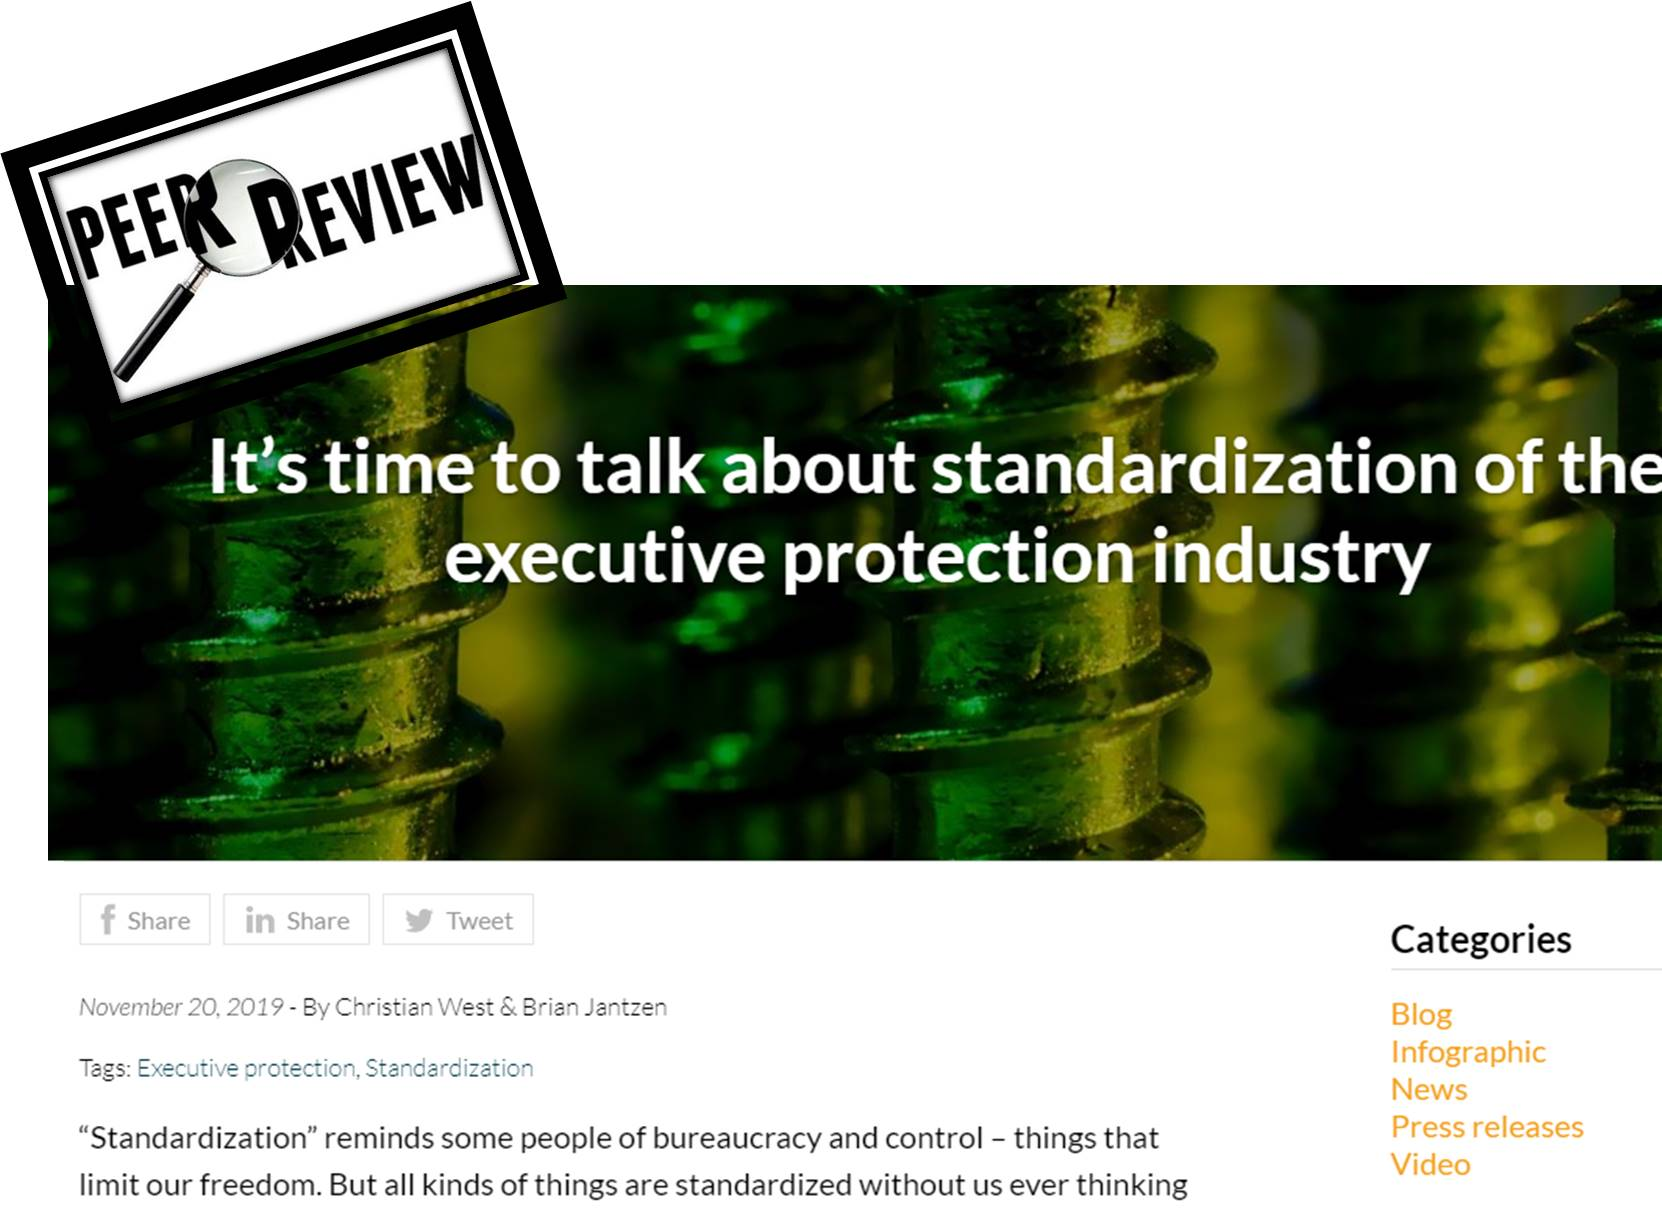 """A Peer Review of """"It's Time to Talk About Standardization of the Executive Protection Industry"""" By Christian West & Brian Jantzen"""